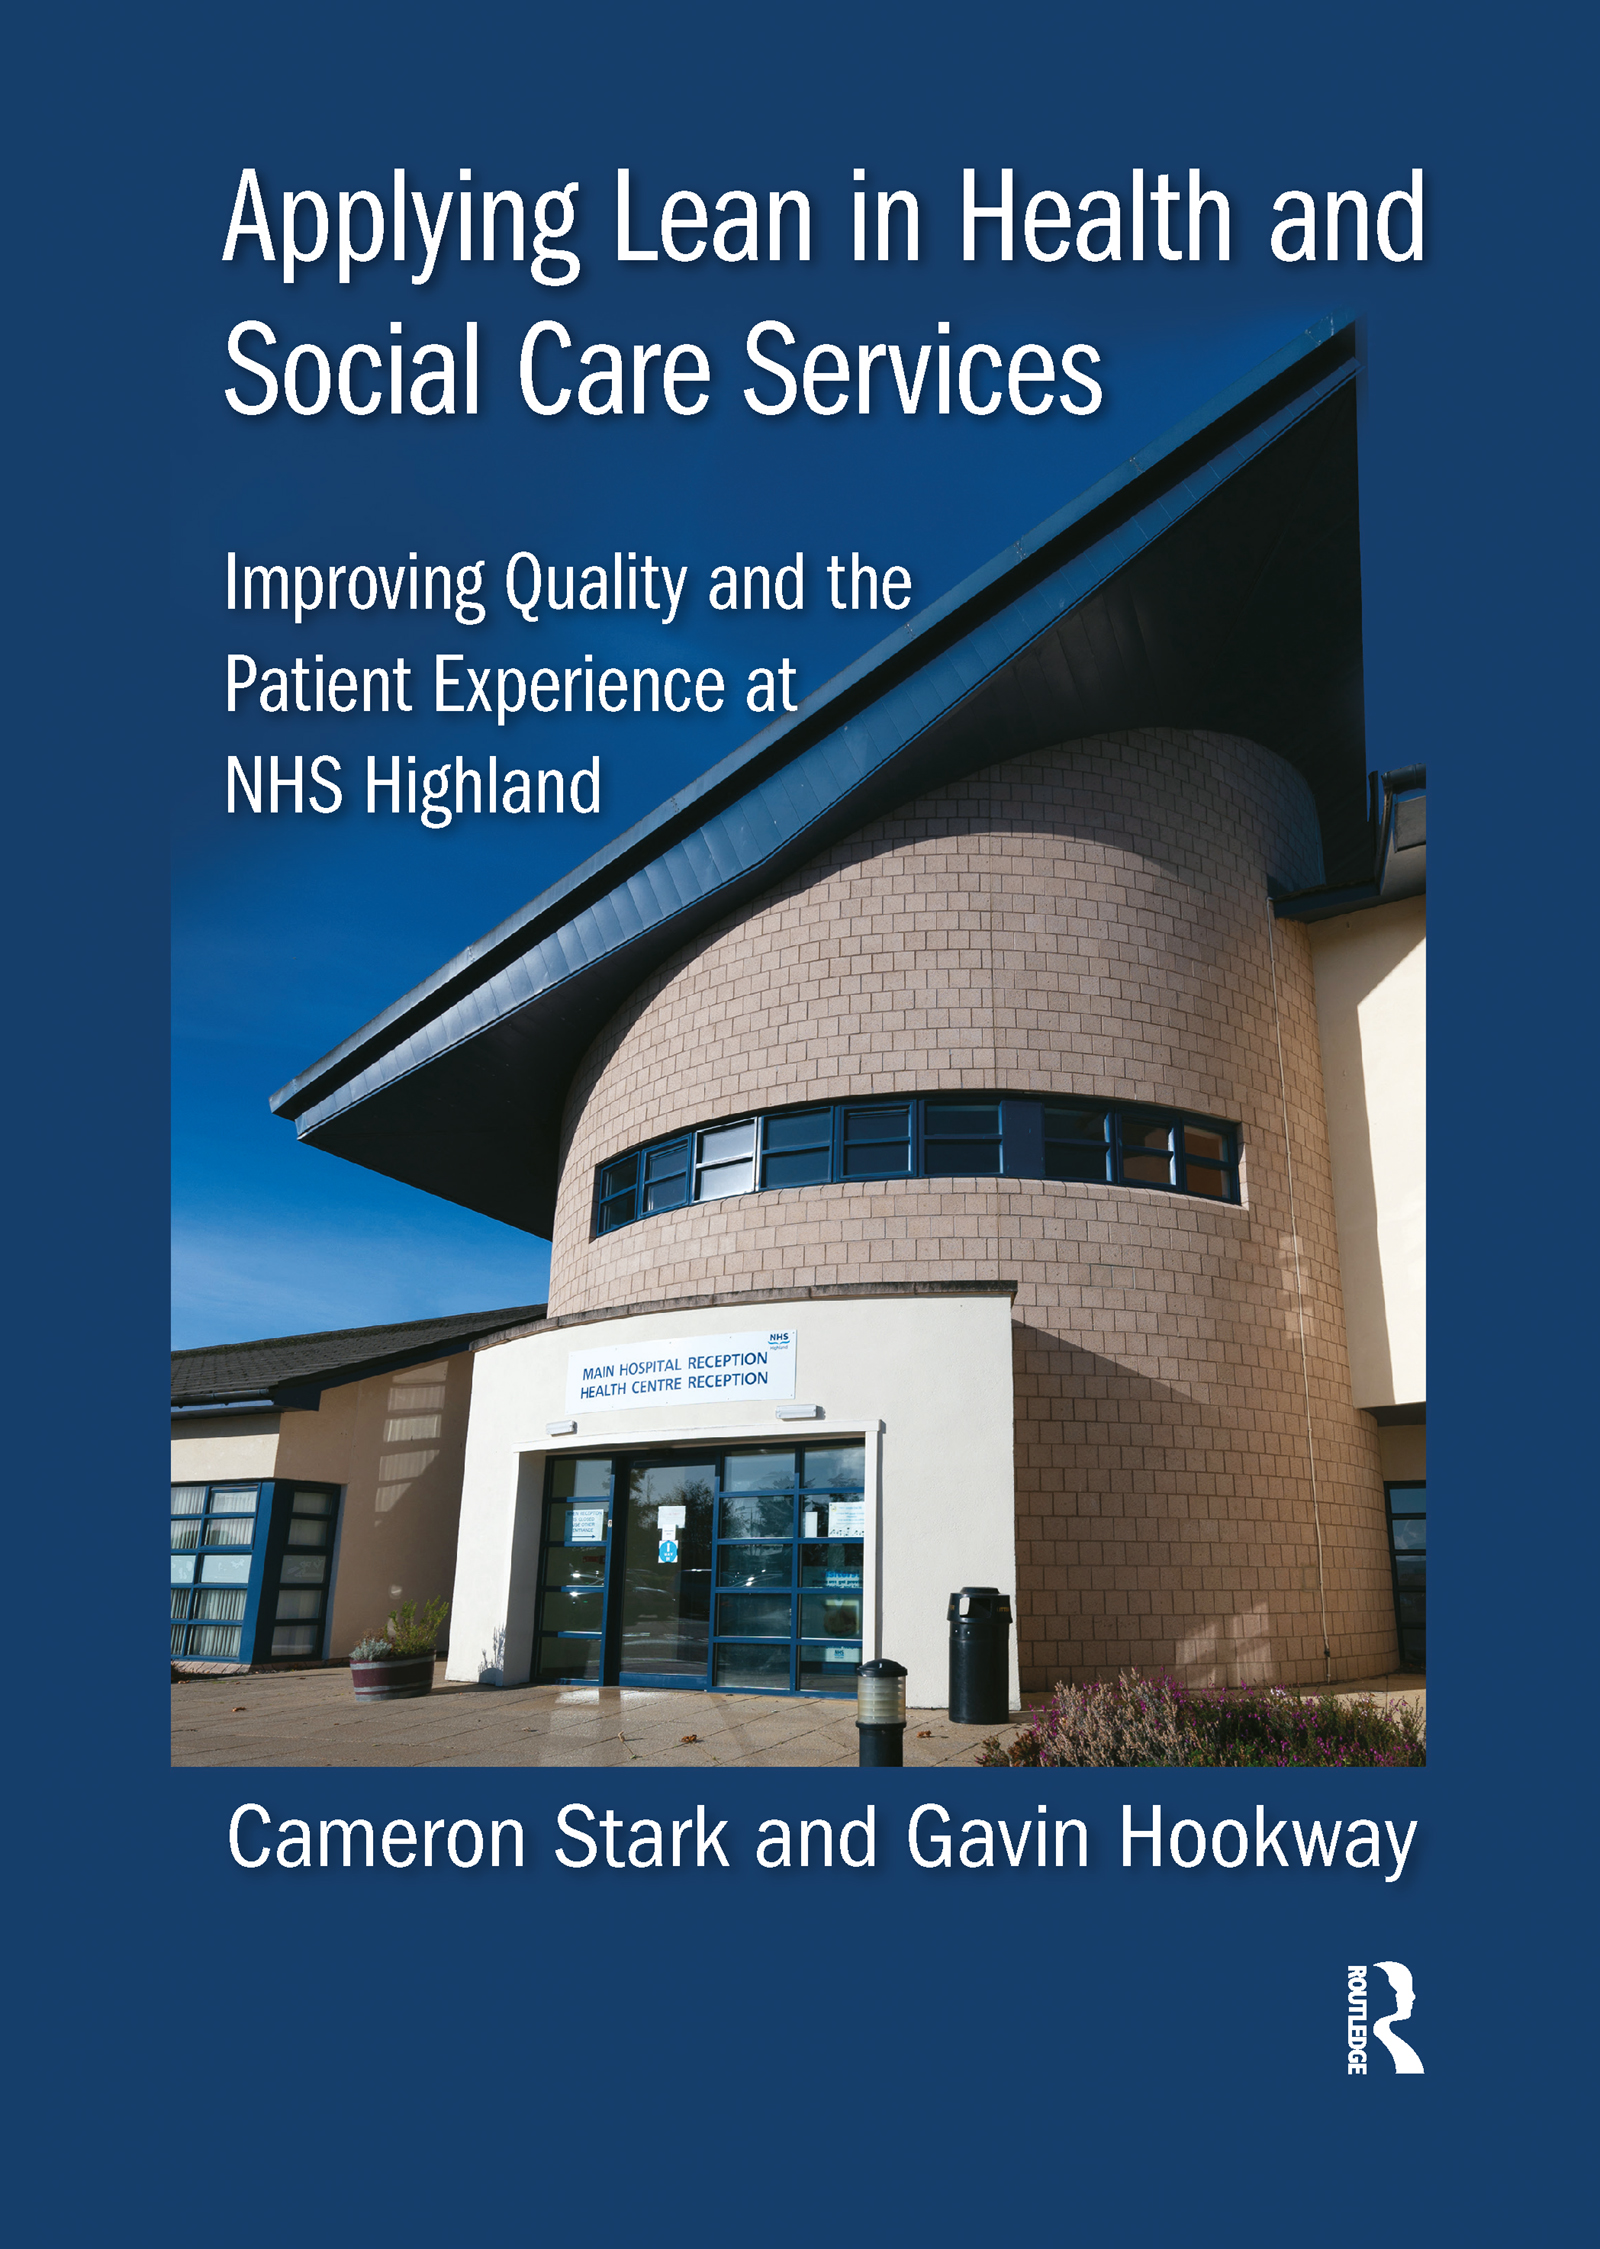 Applying Lean in Health and Social Care Services